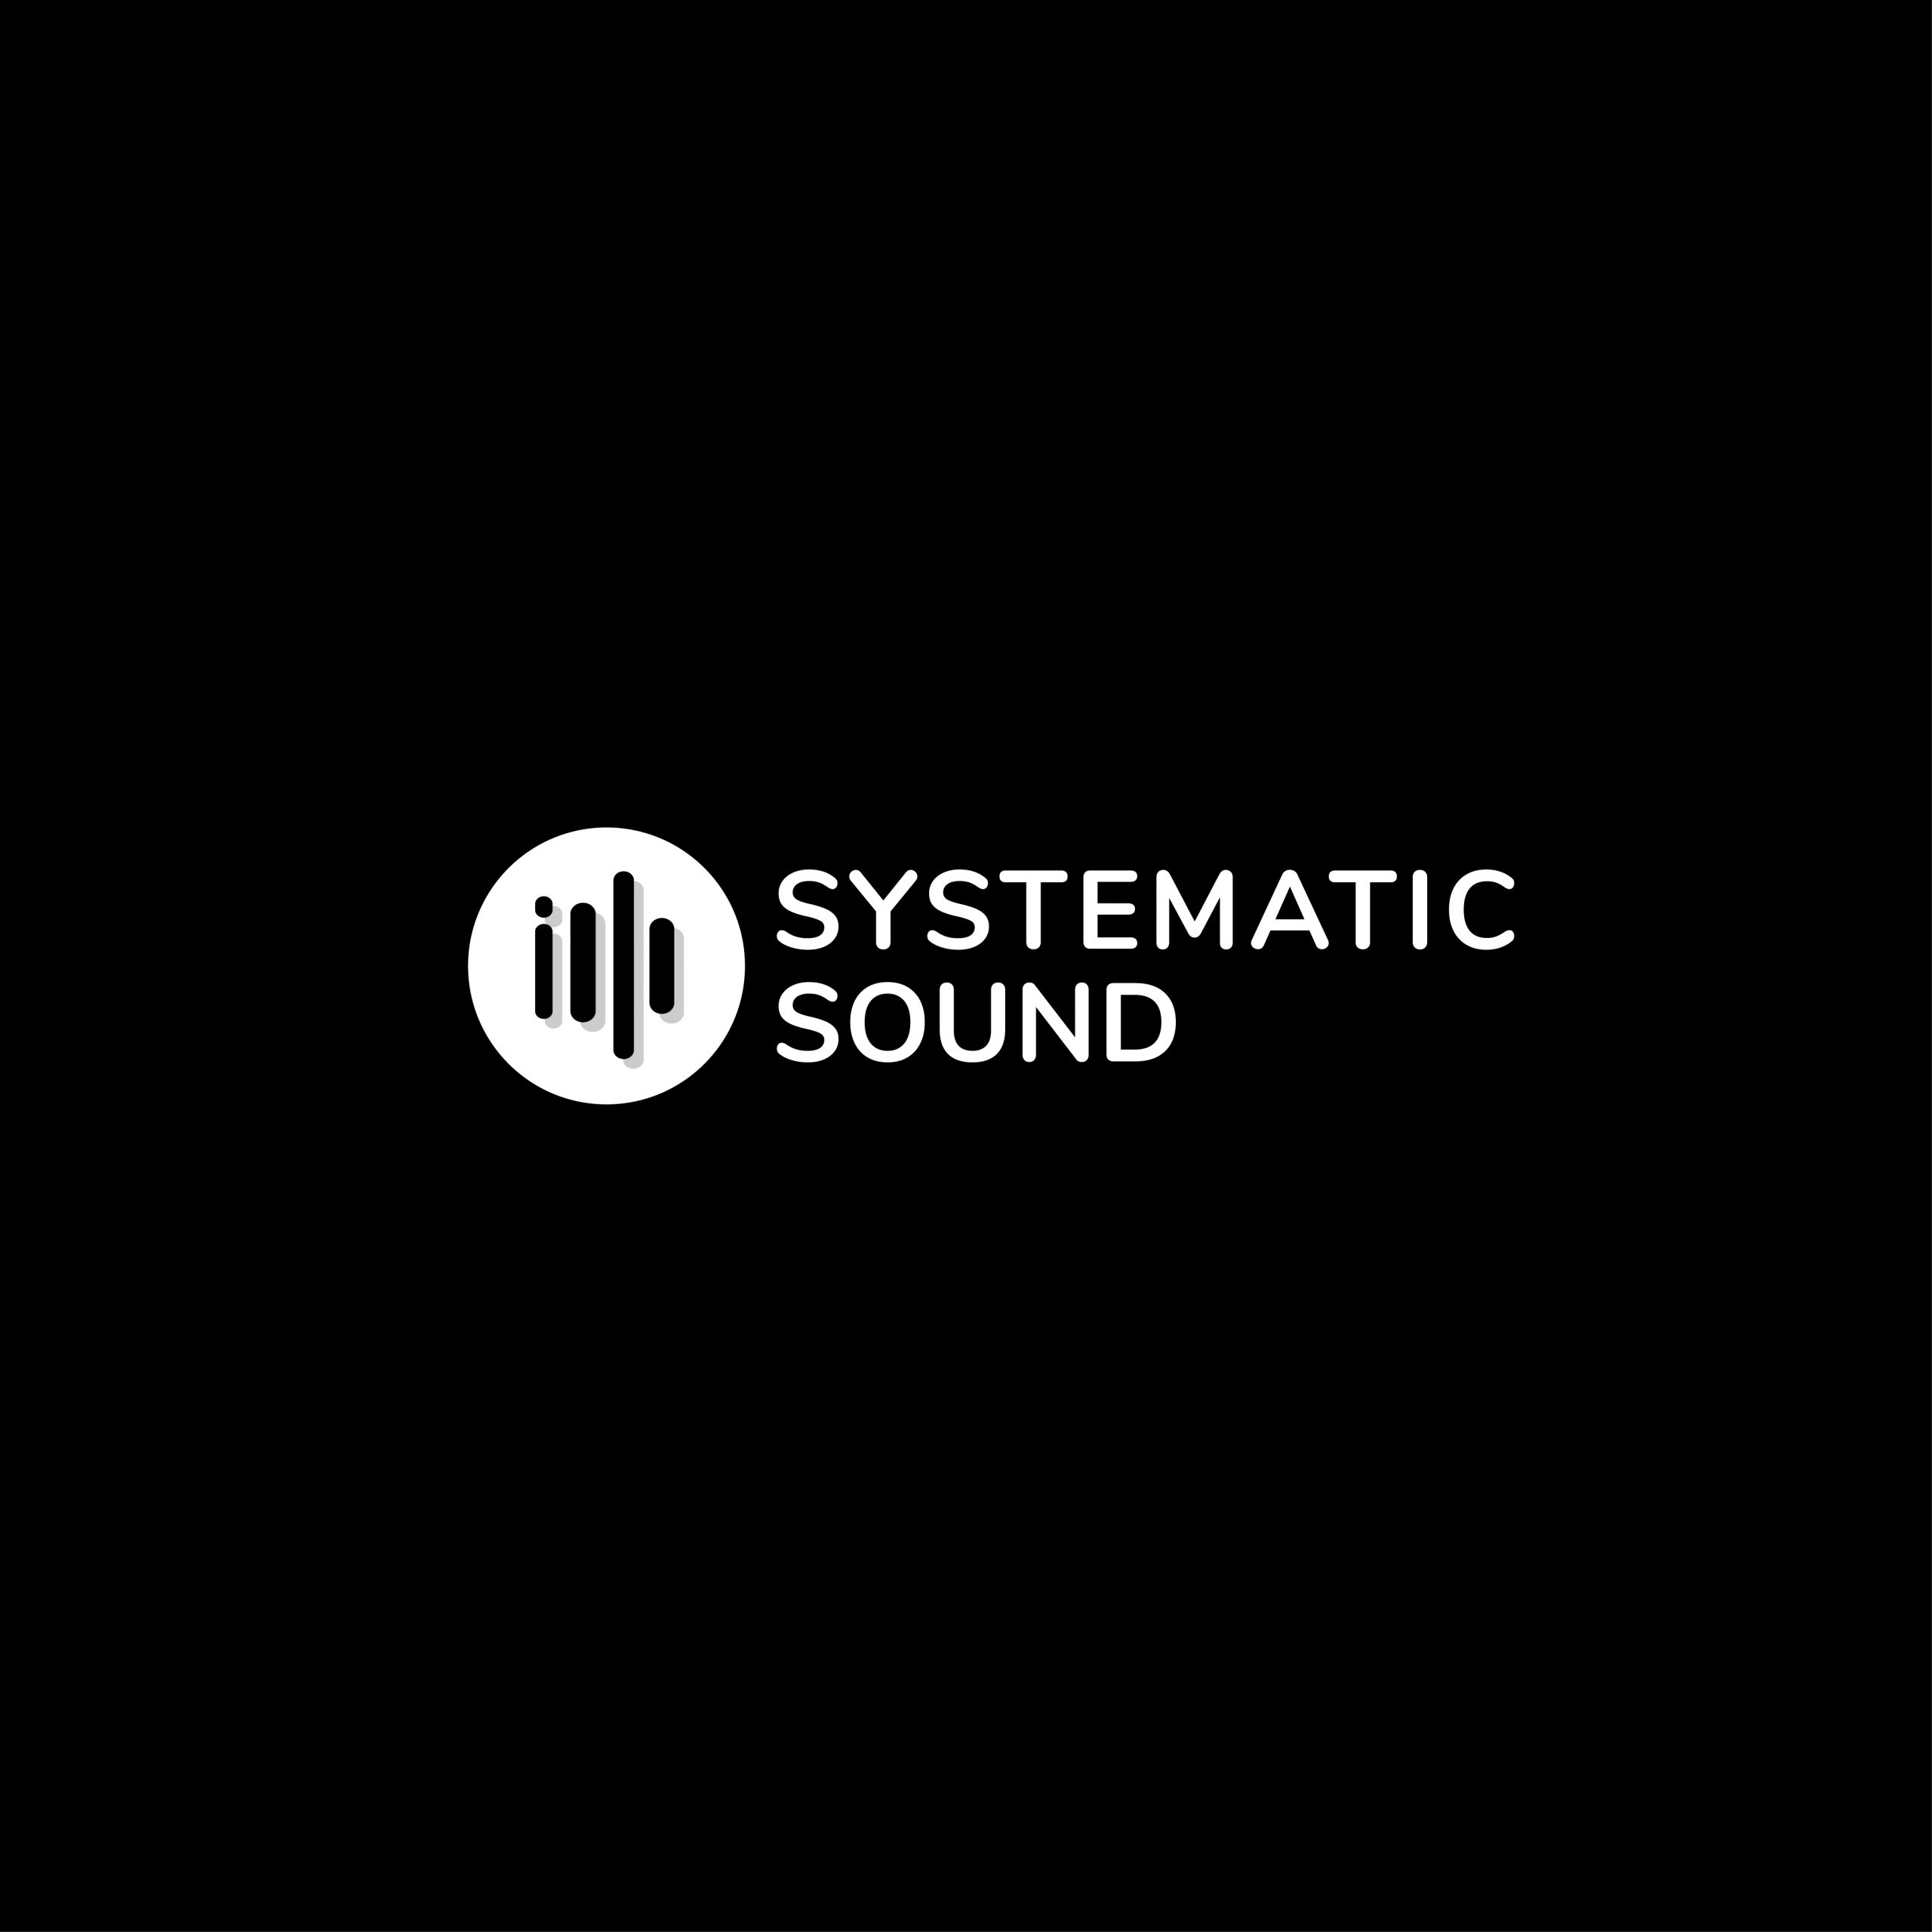 Systematic Sound is here!